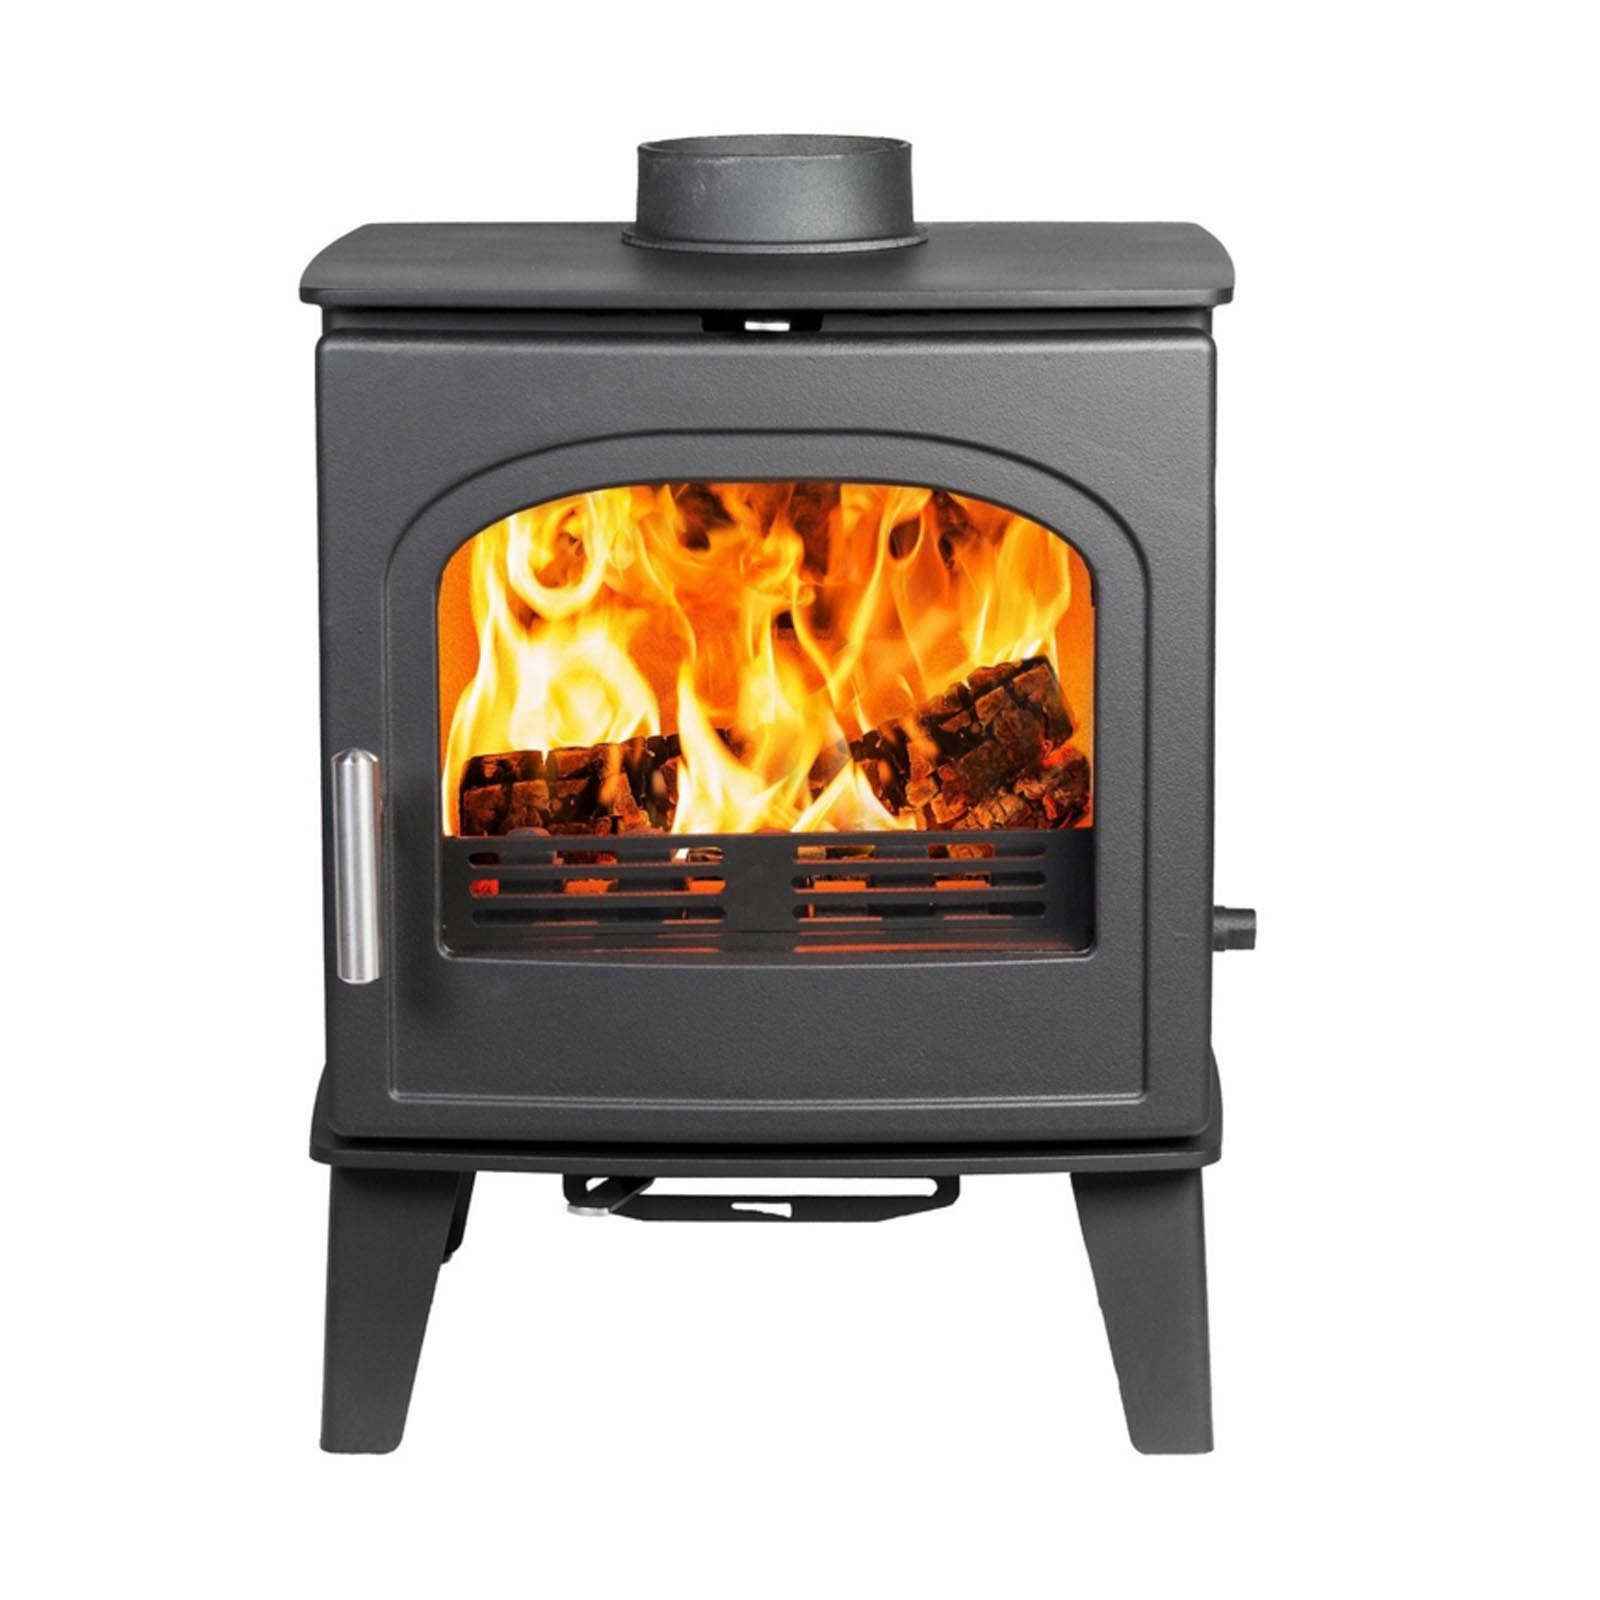 Cleanburn Stove Eco Ideal Eco 6 Multifuel Stove Best